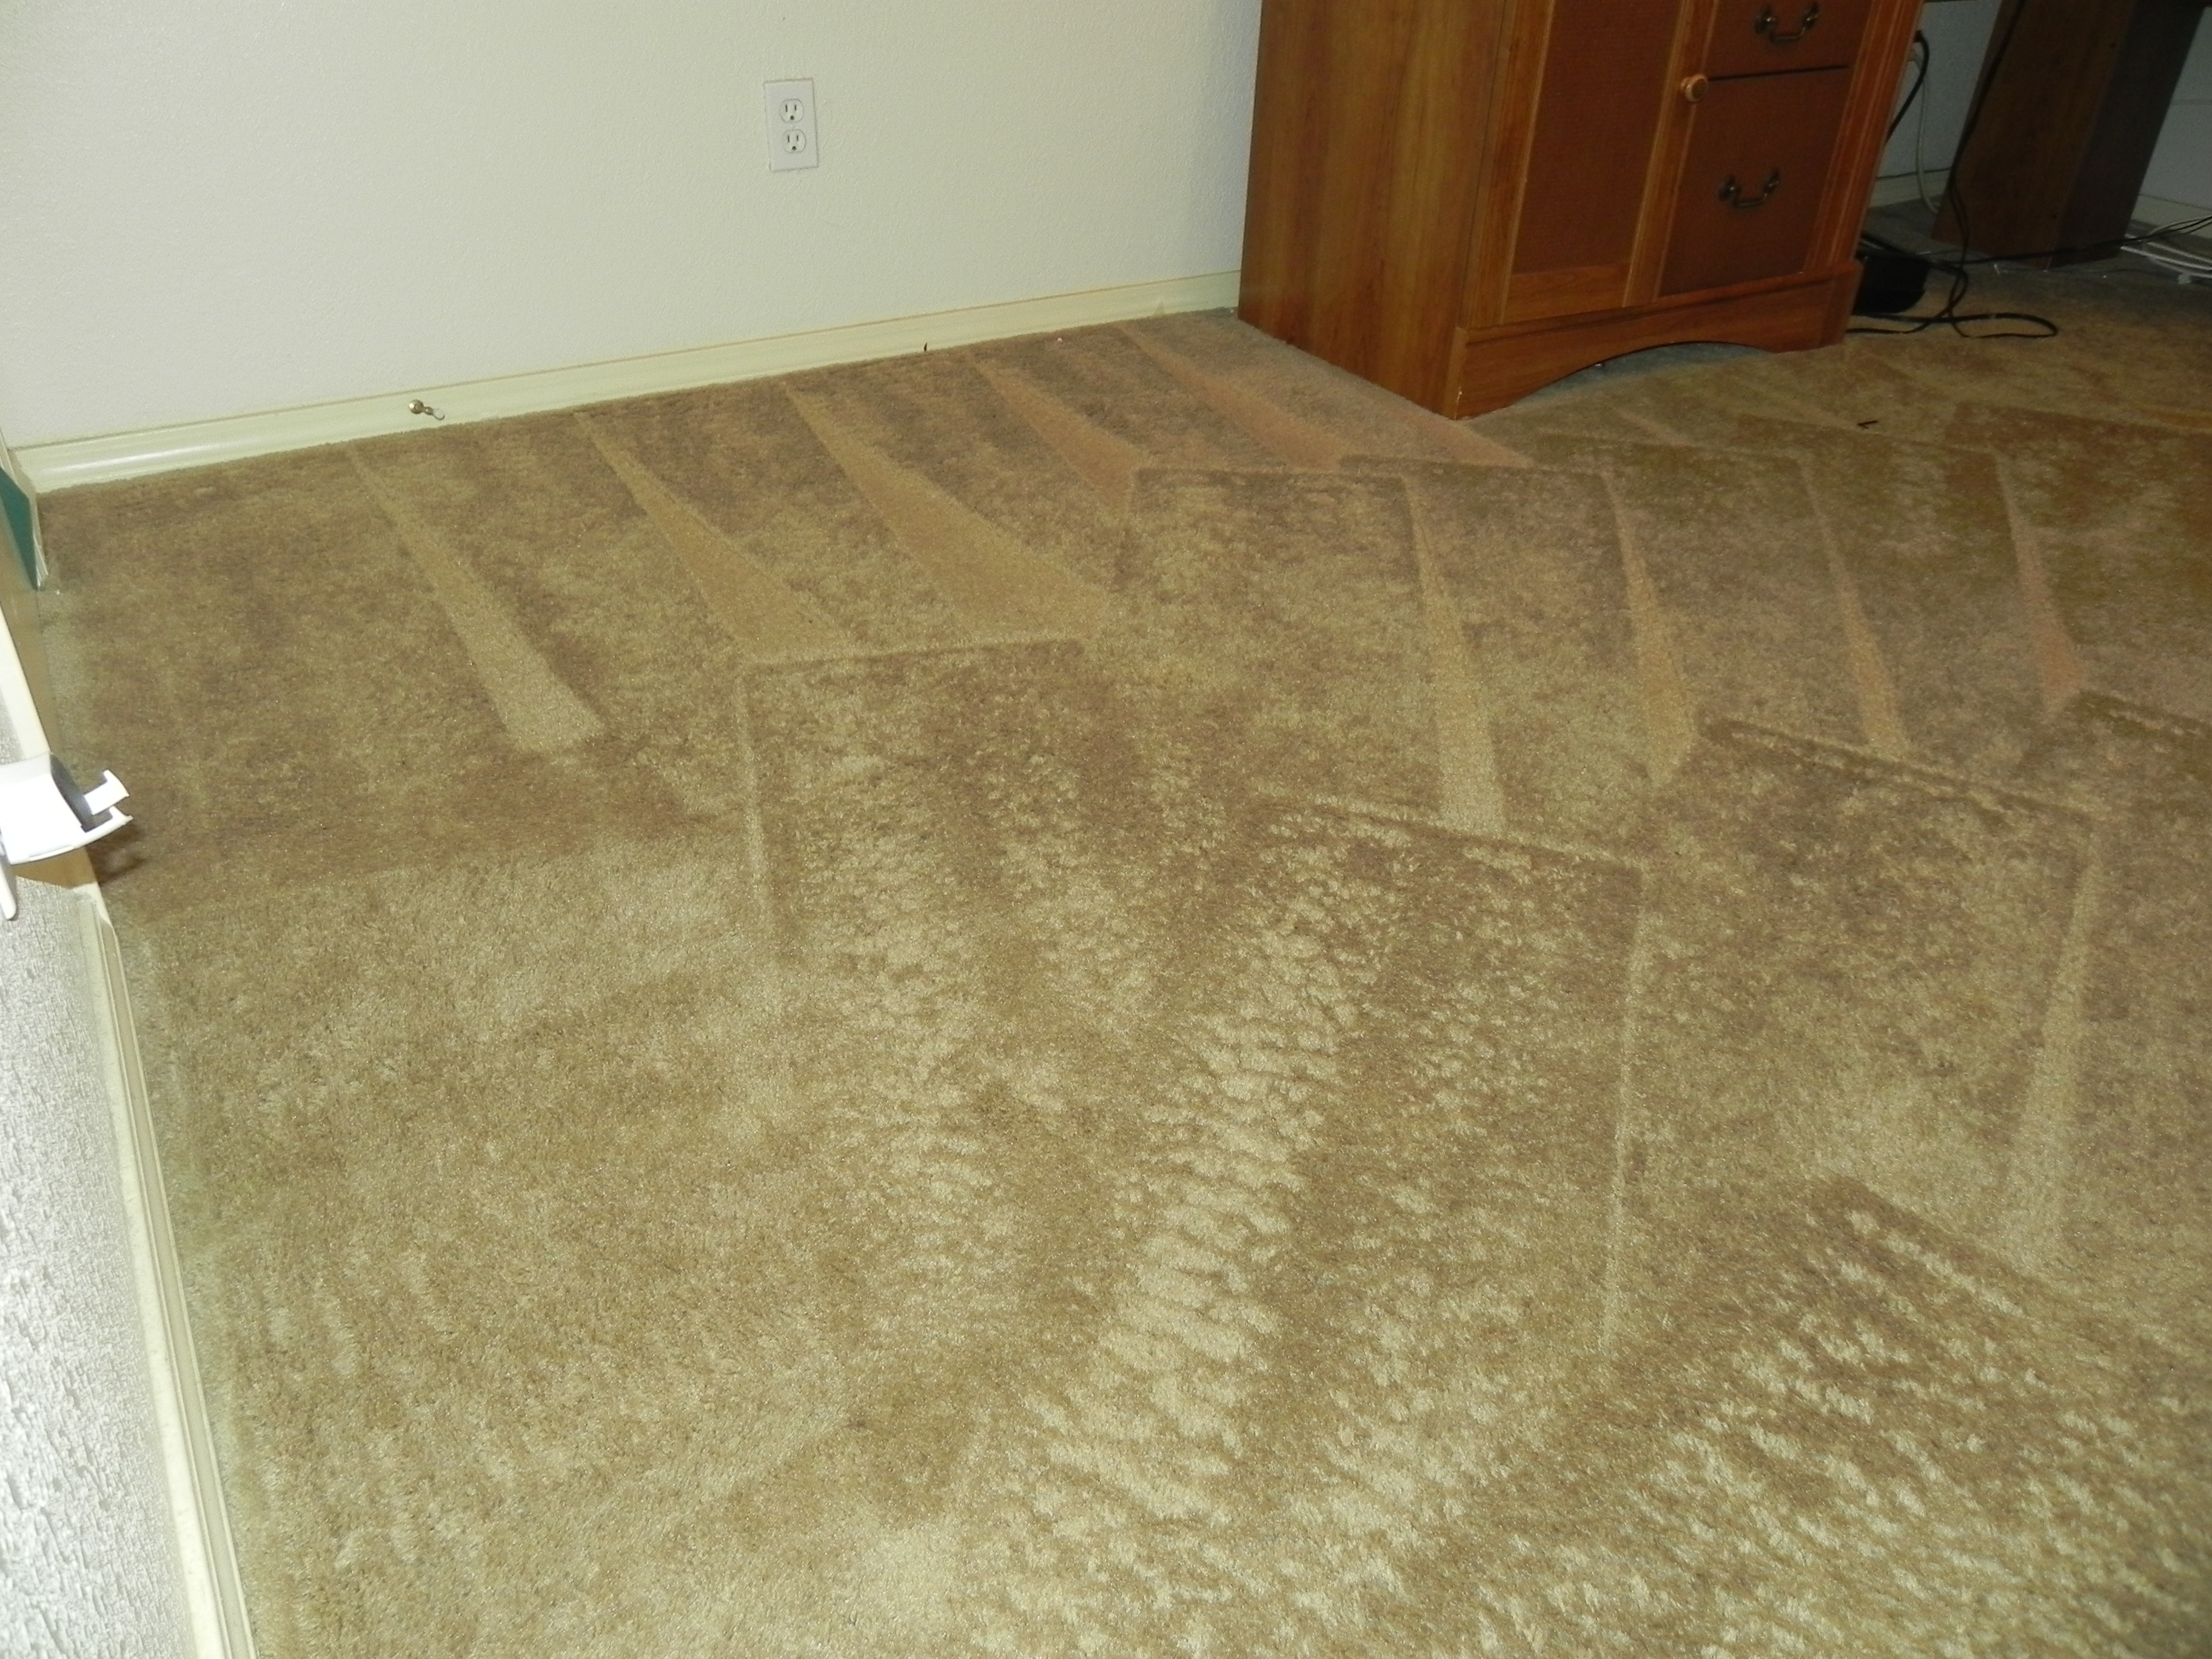 Color printing el paso tx - Beautiful Steam Cleaned Carpet In El Paso Home